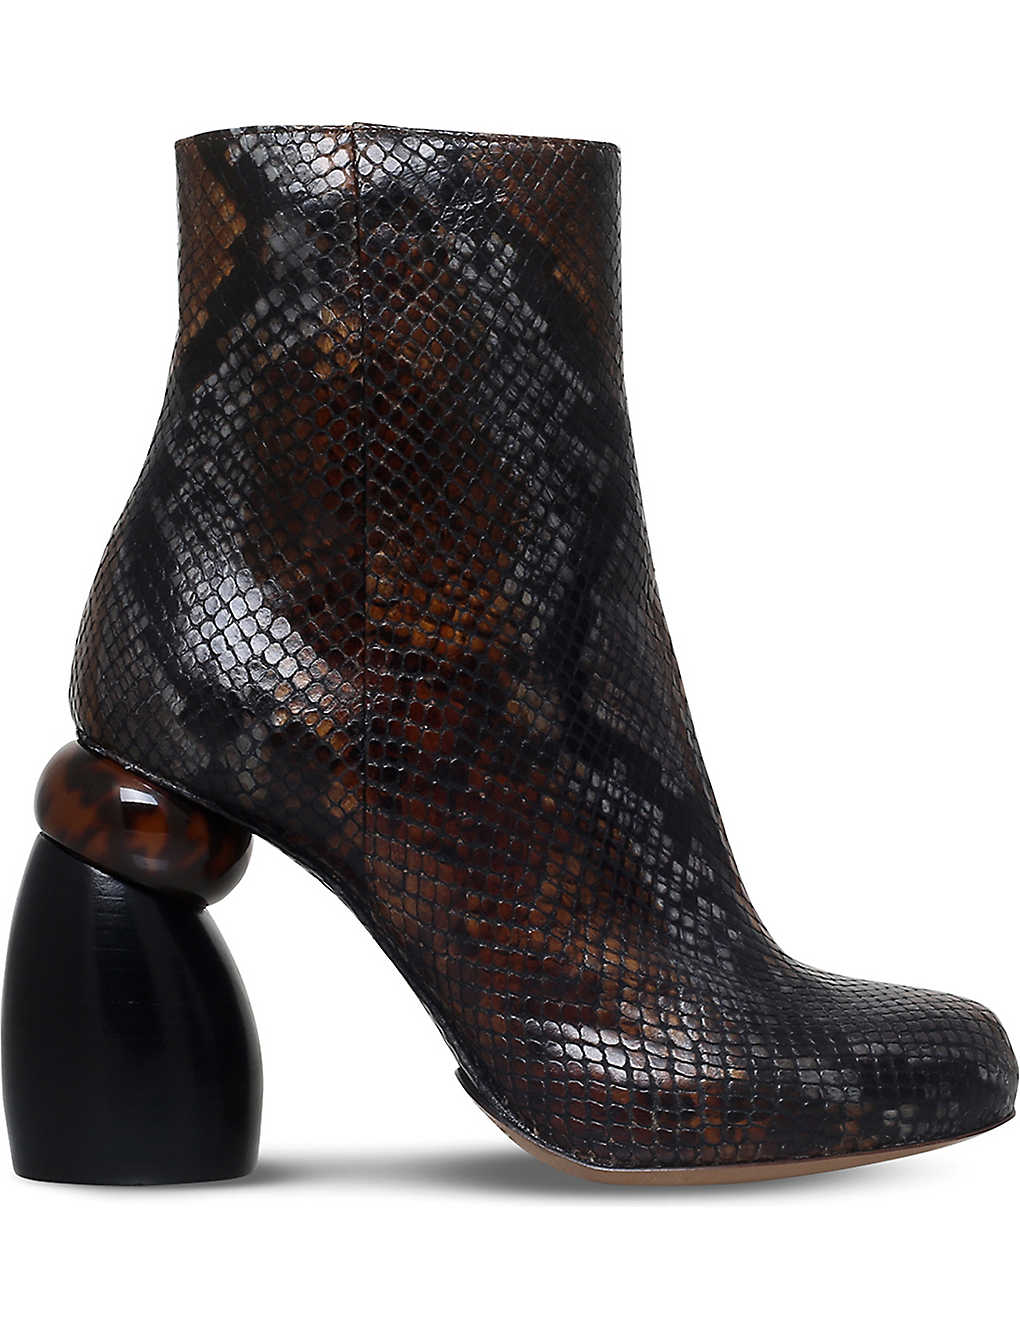 5e44f2a20ad8d7 DRIES VAN NOTEN - Snake-embossed leather ankle boots